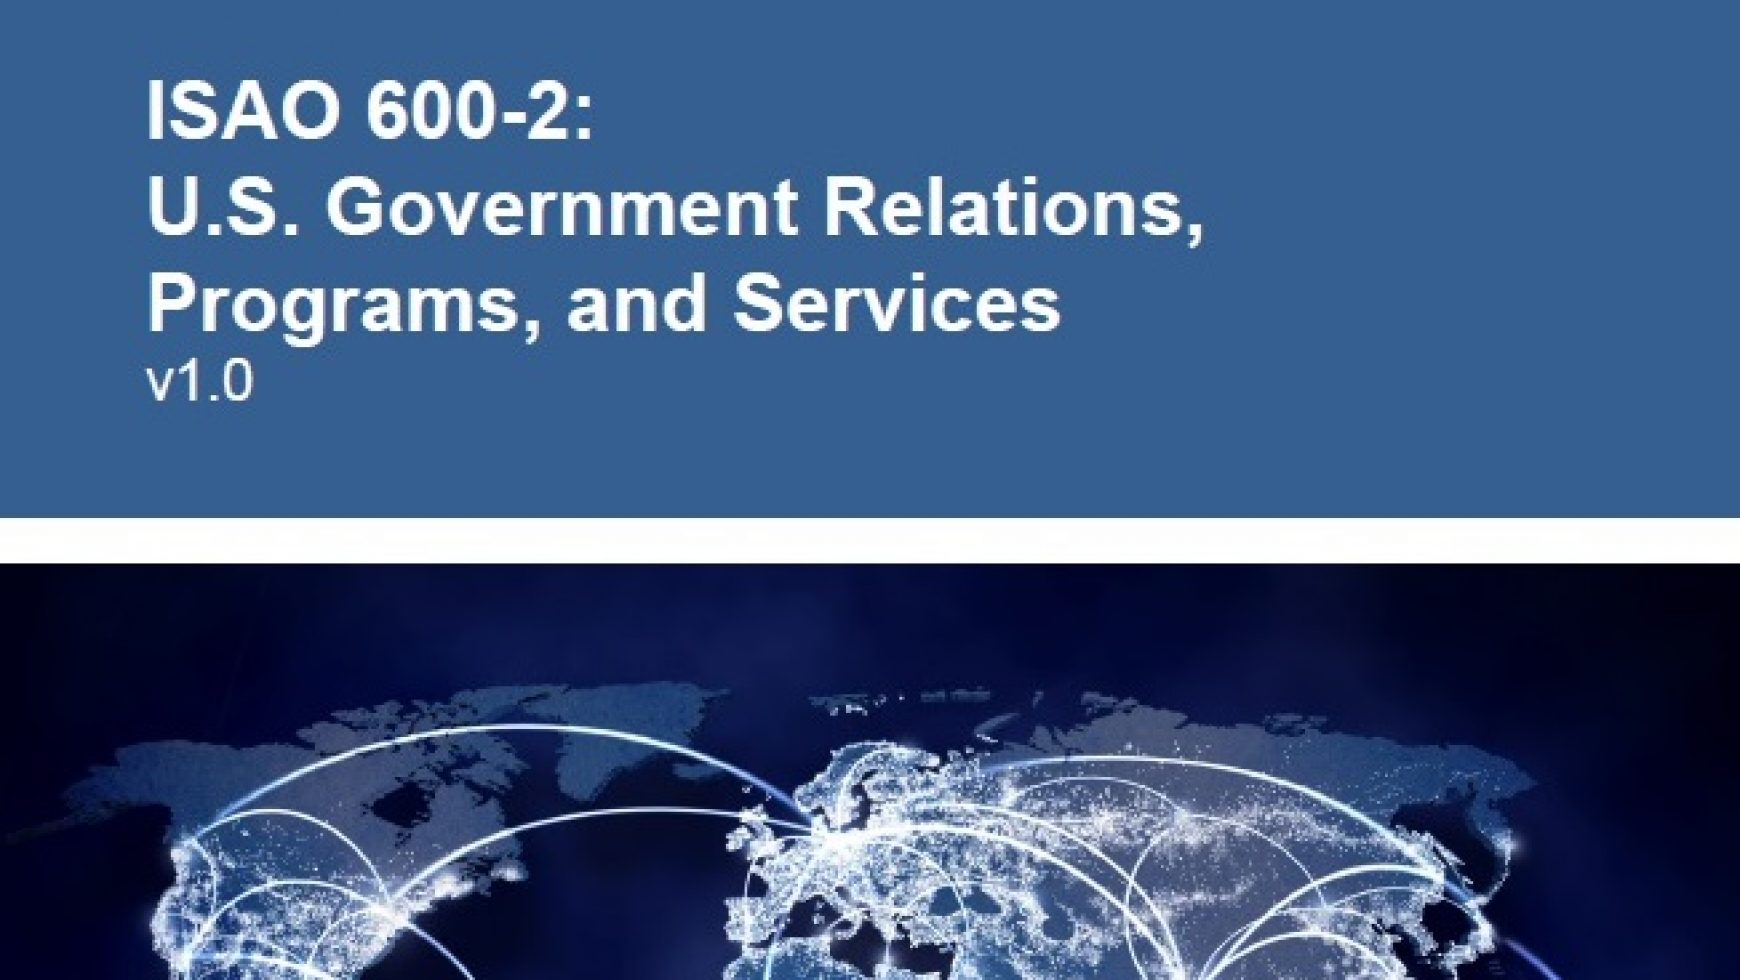 ISAO 600-2: US Government Relations, Programs, and Services v1.0